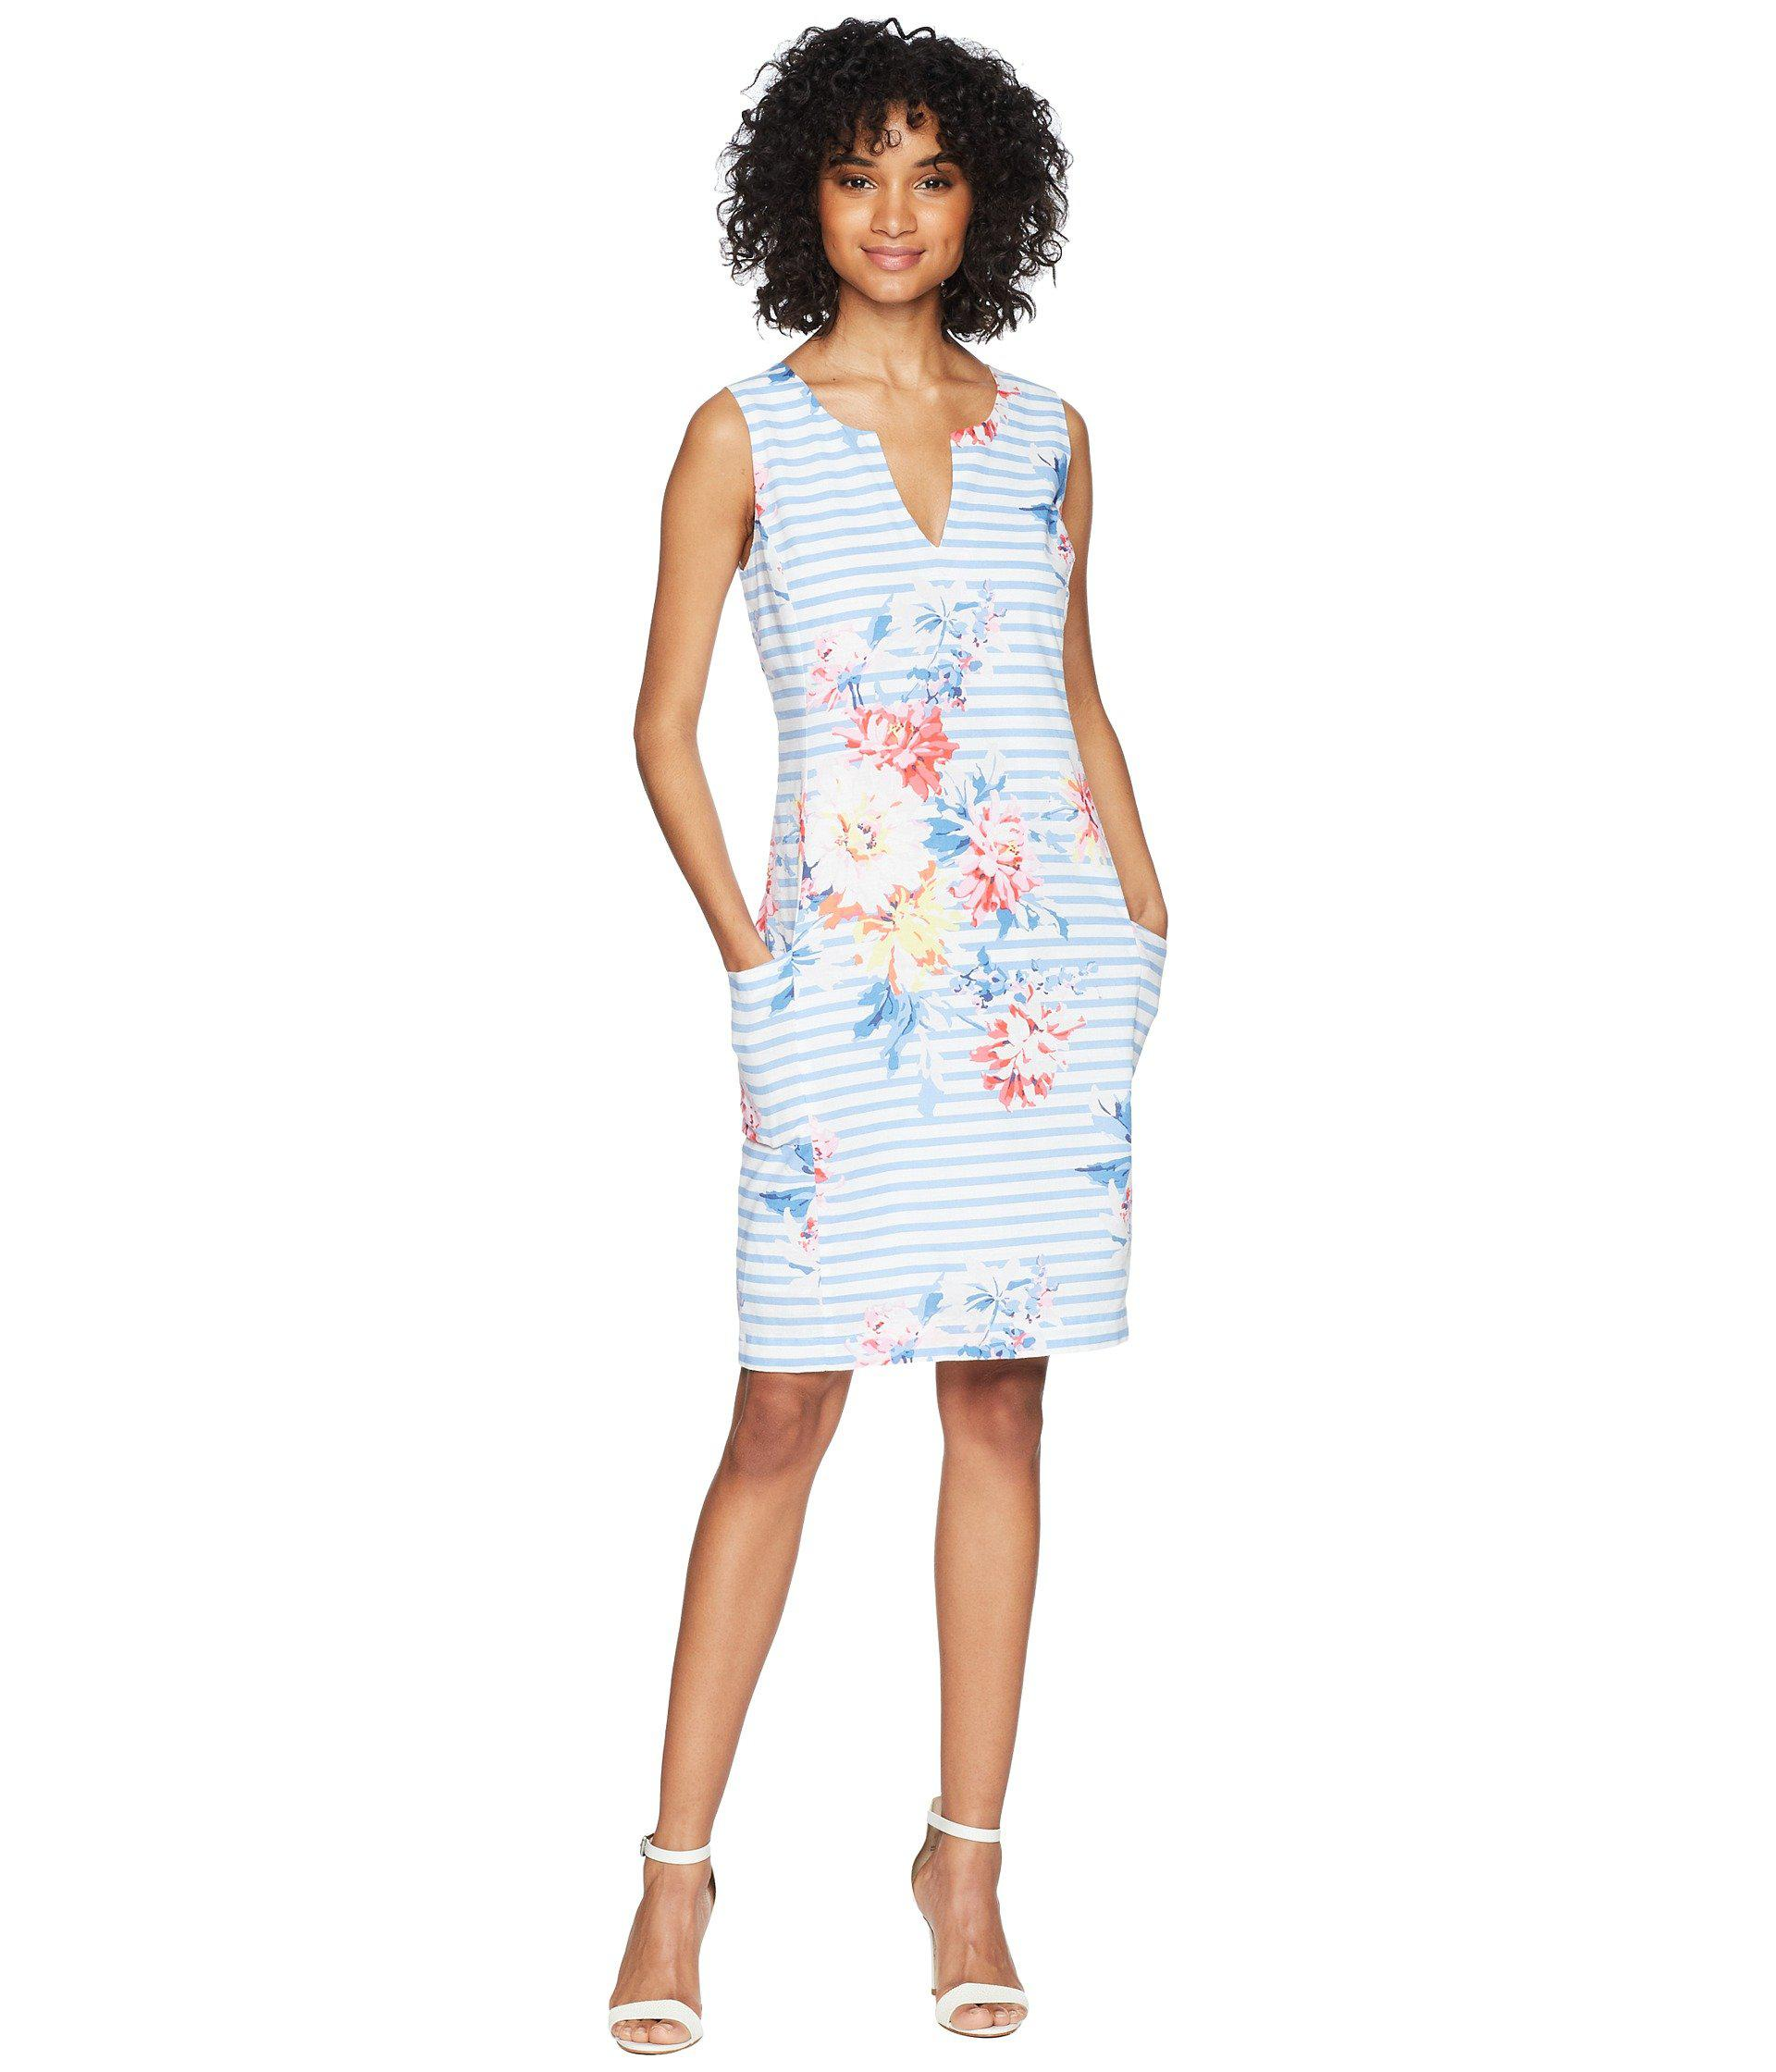 5a10af9e44 Lyst - Joules Elayna Notch Neck Shift Dress in White - Save 51%